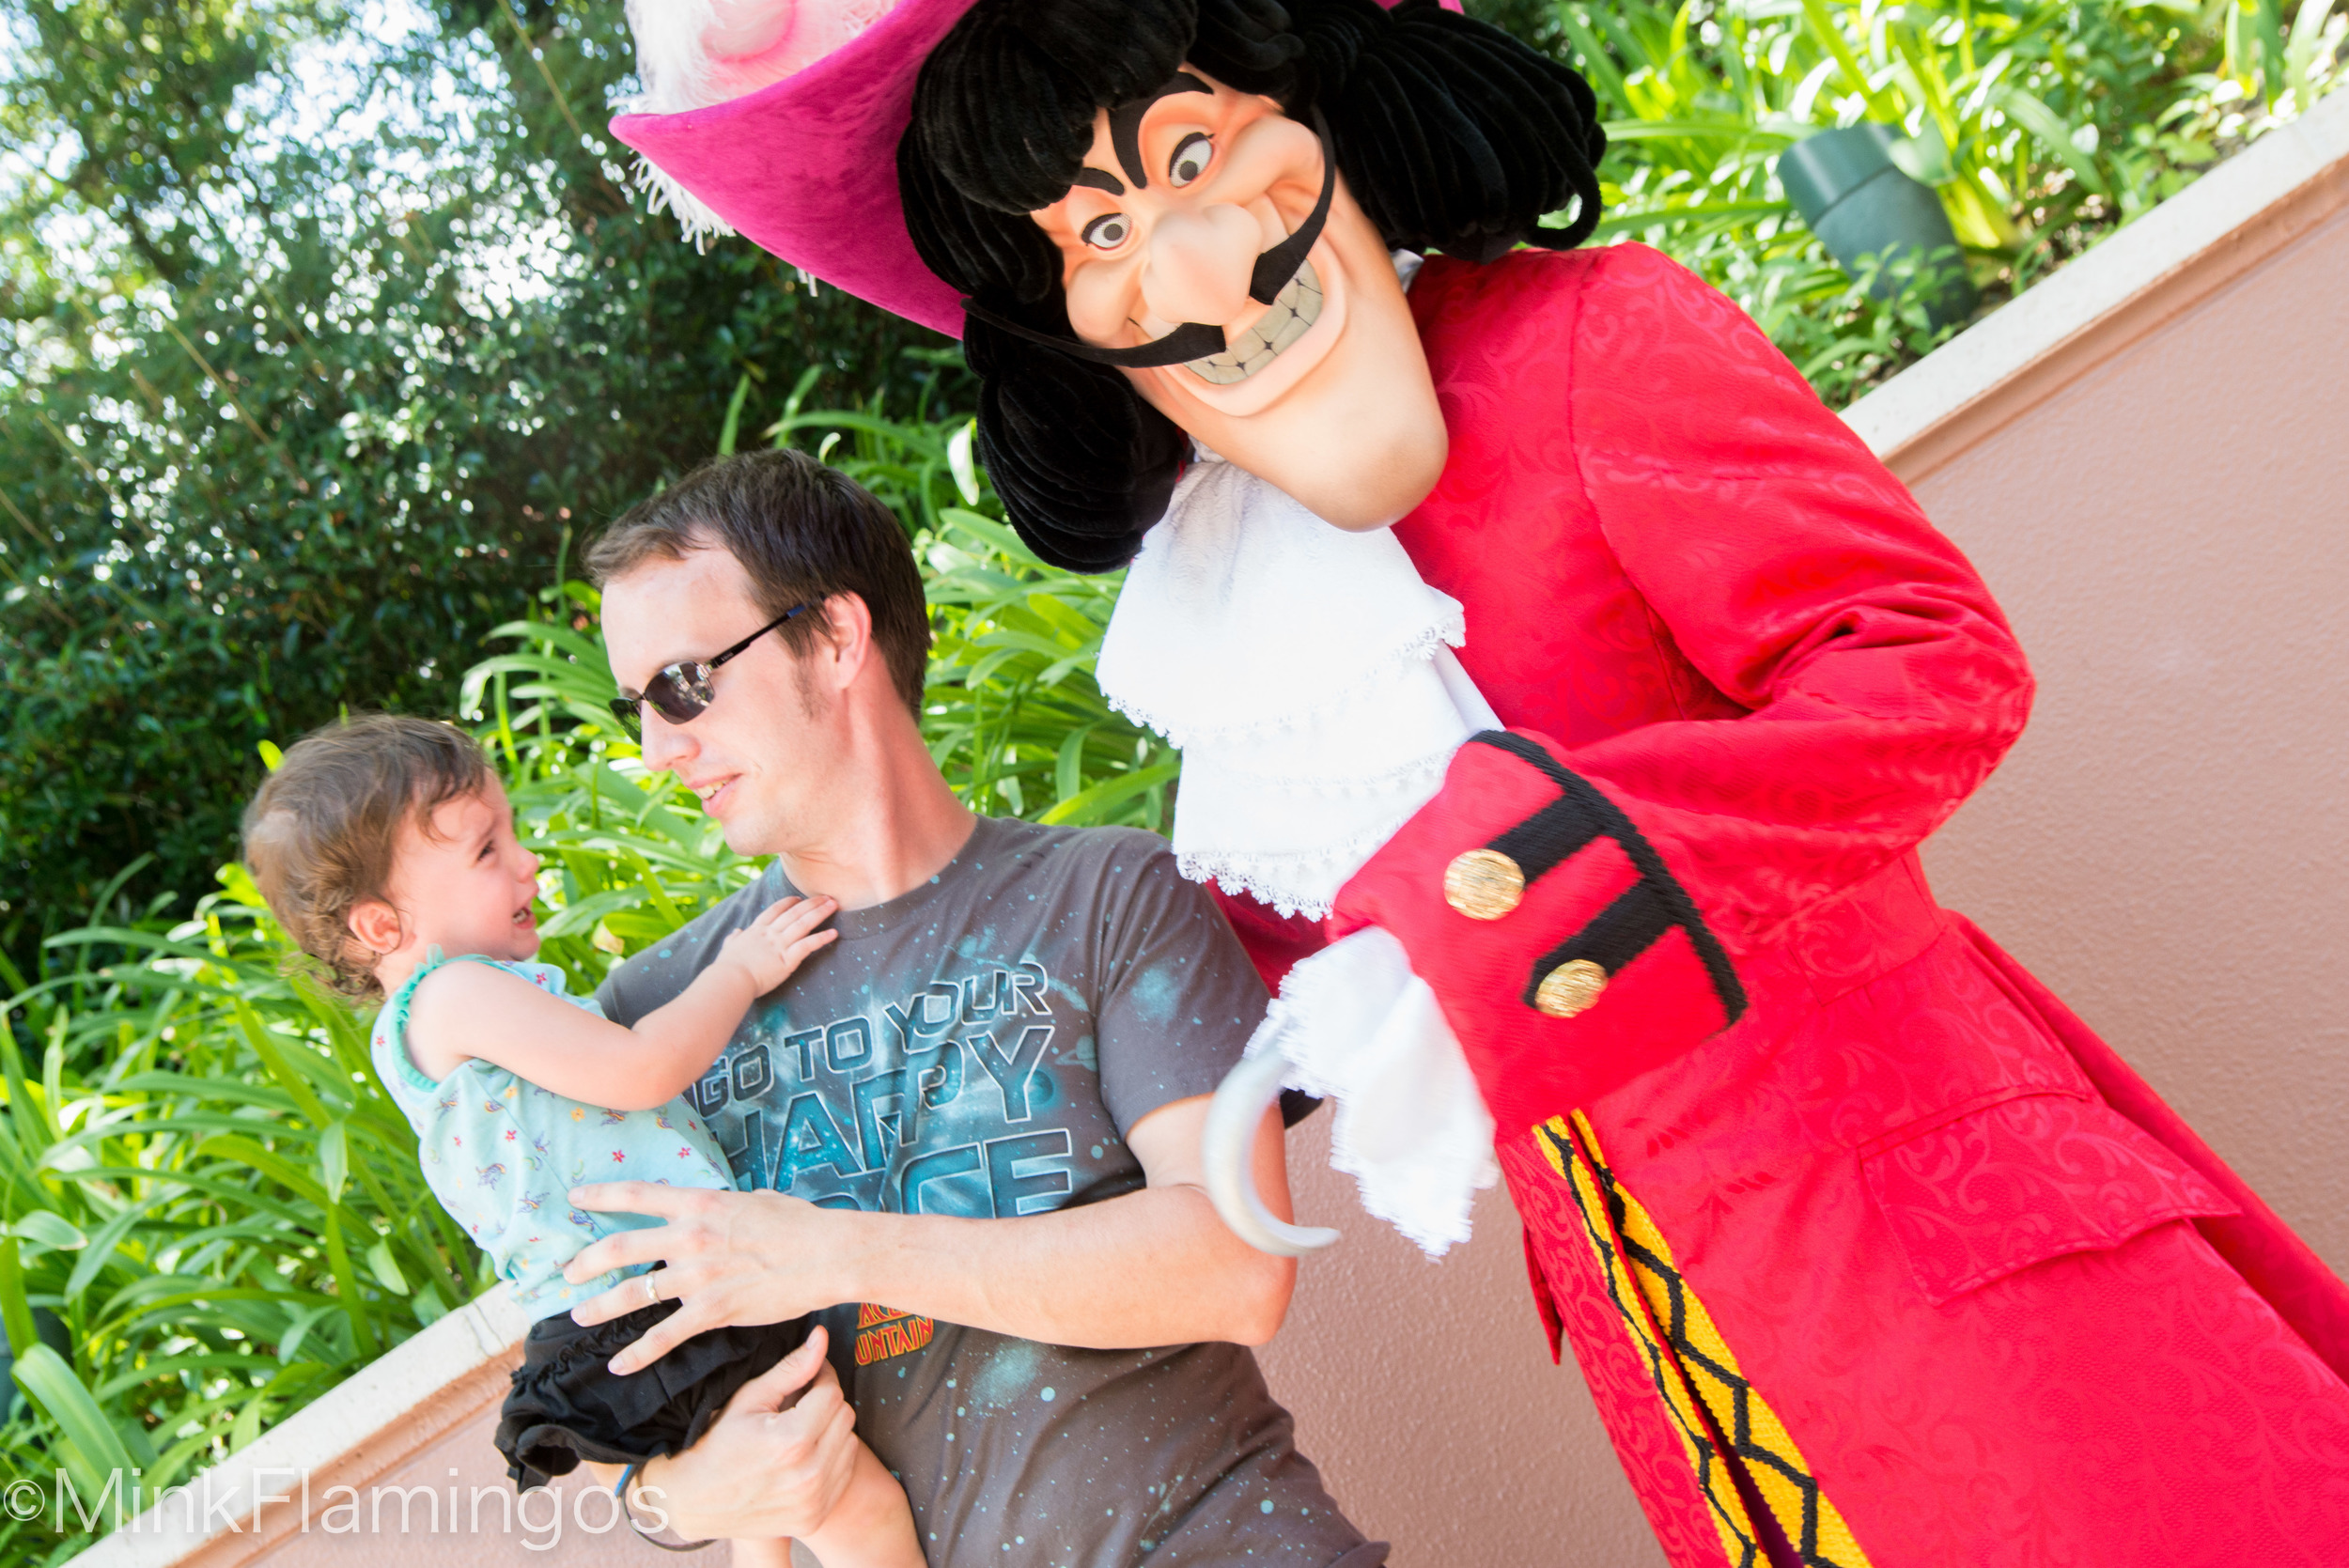 the Peanut does NOT want to meet Captain Hook